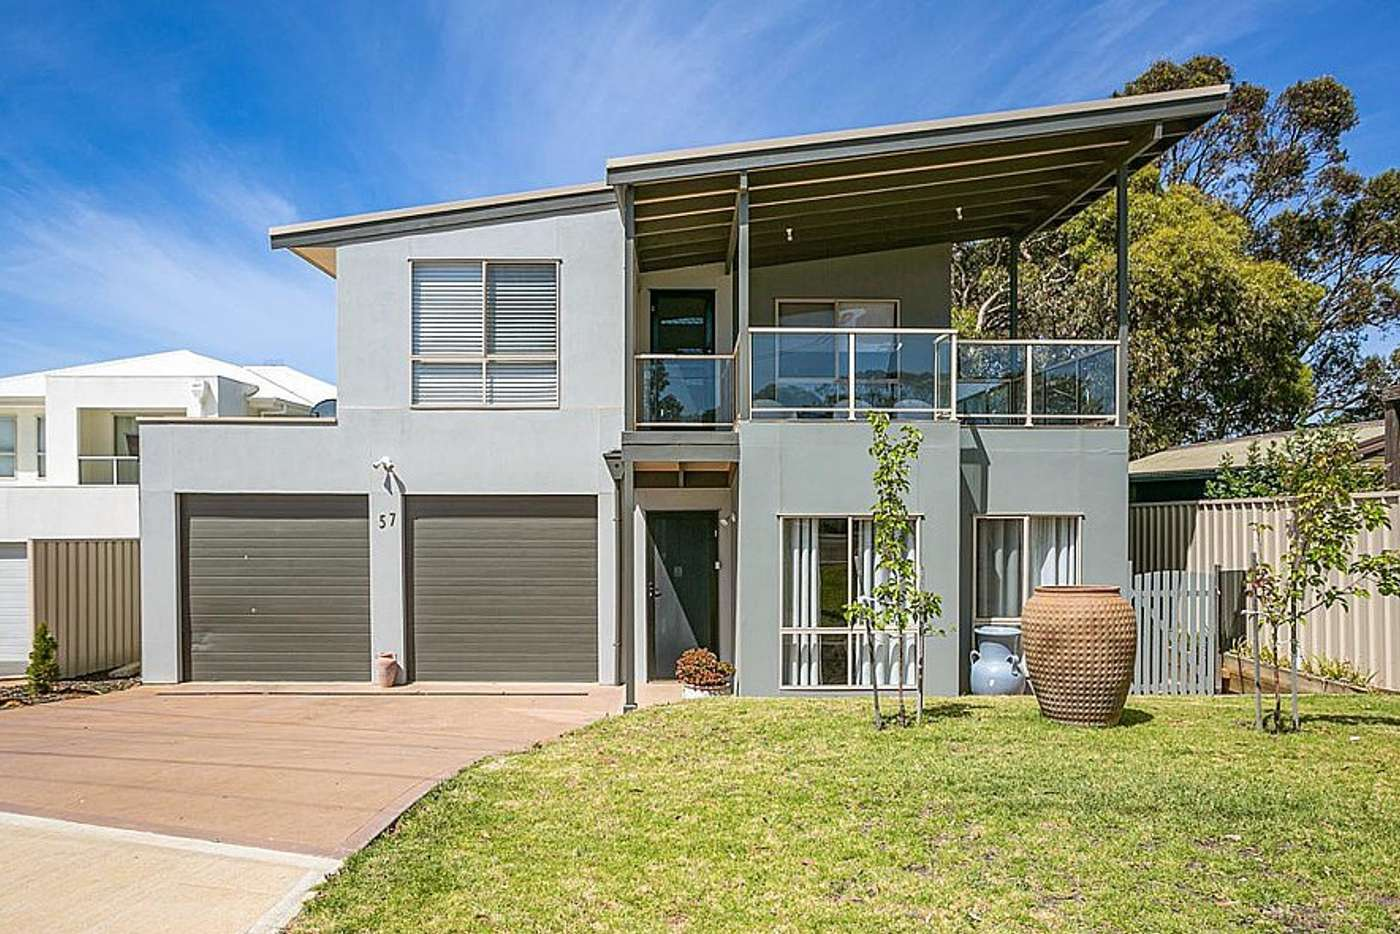 Main view of Homely house listing, 57 Greenhills Road, Victor Harbor SA 5211